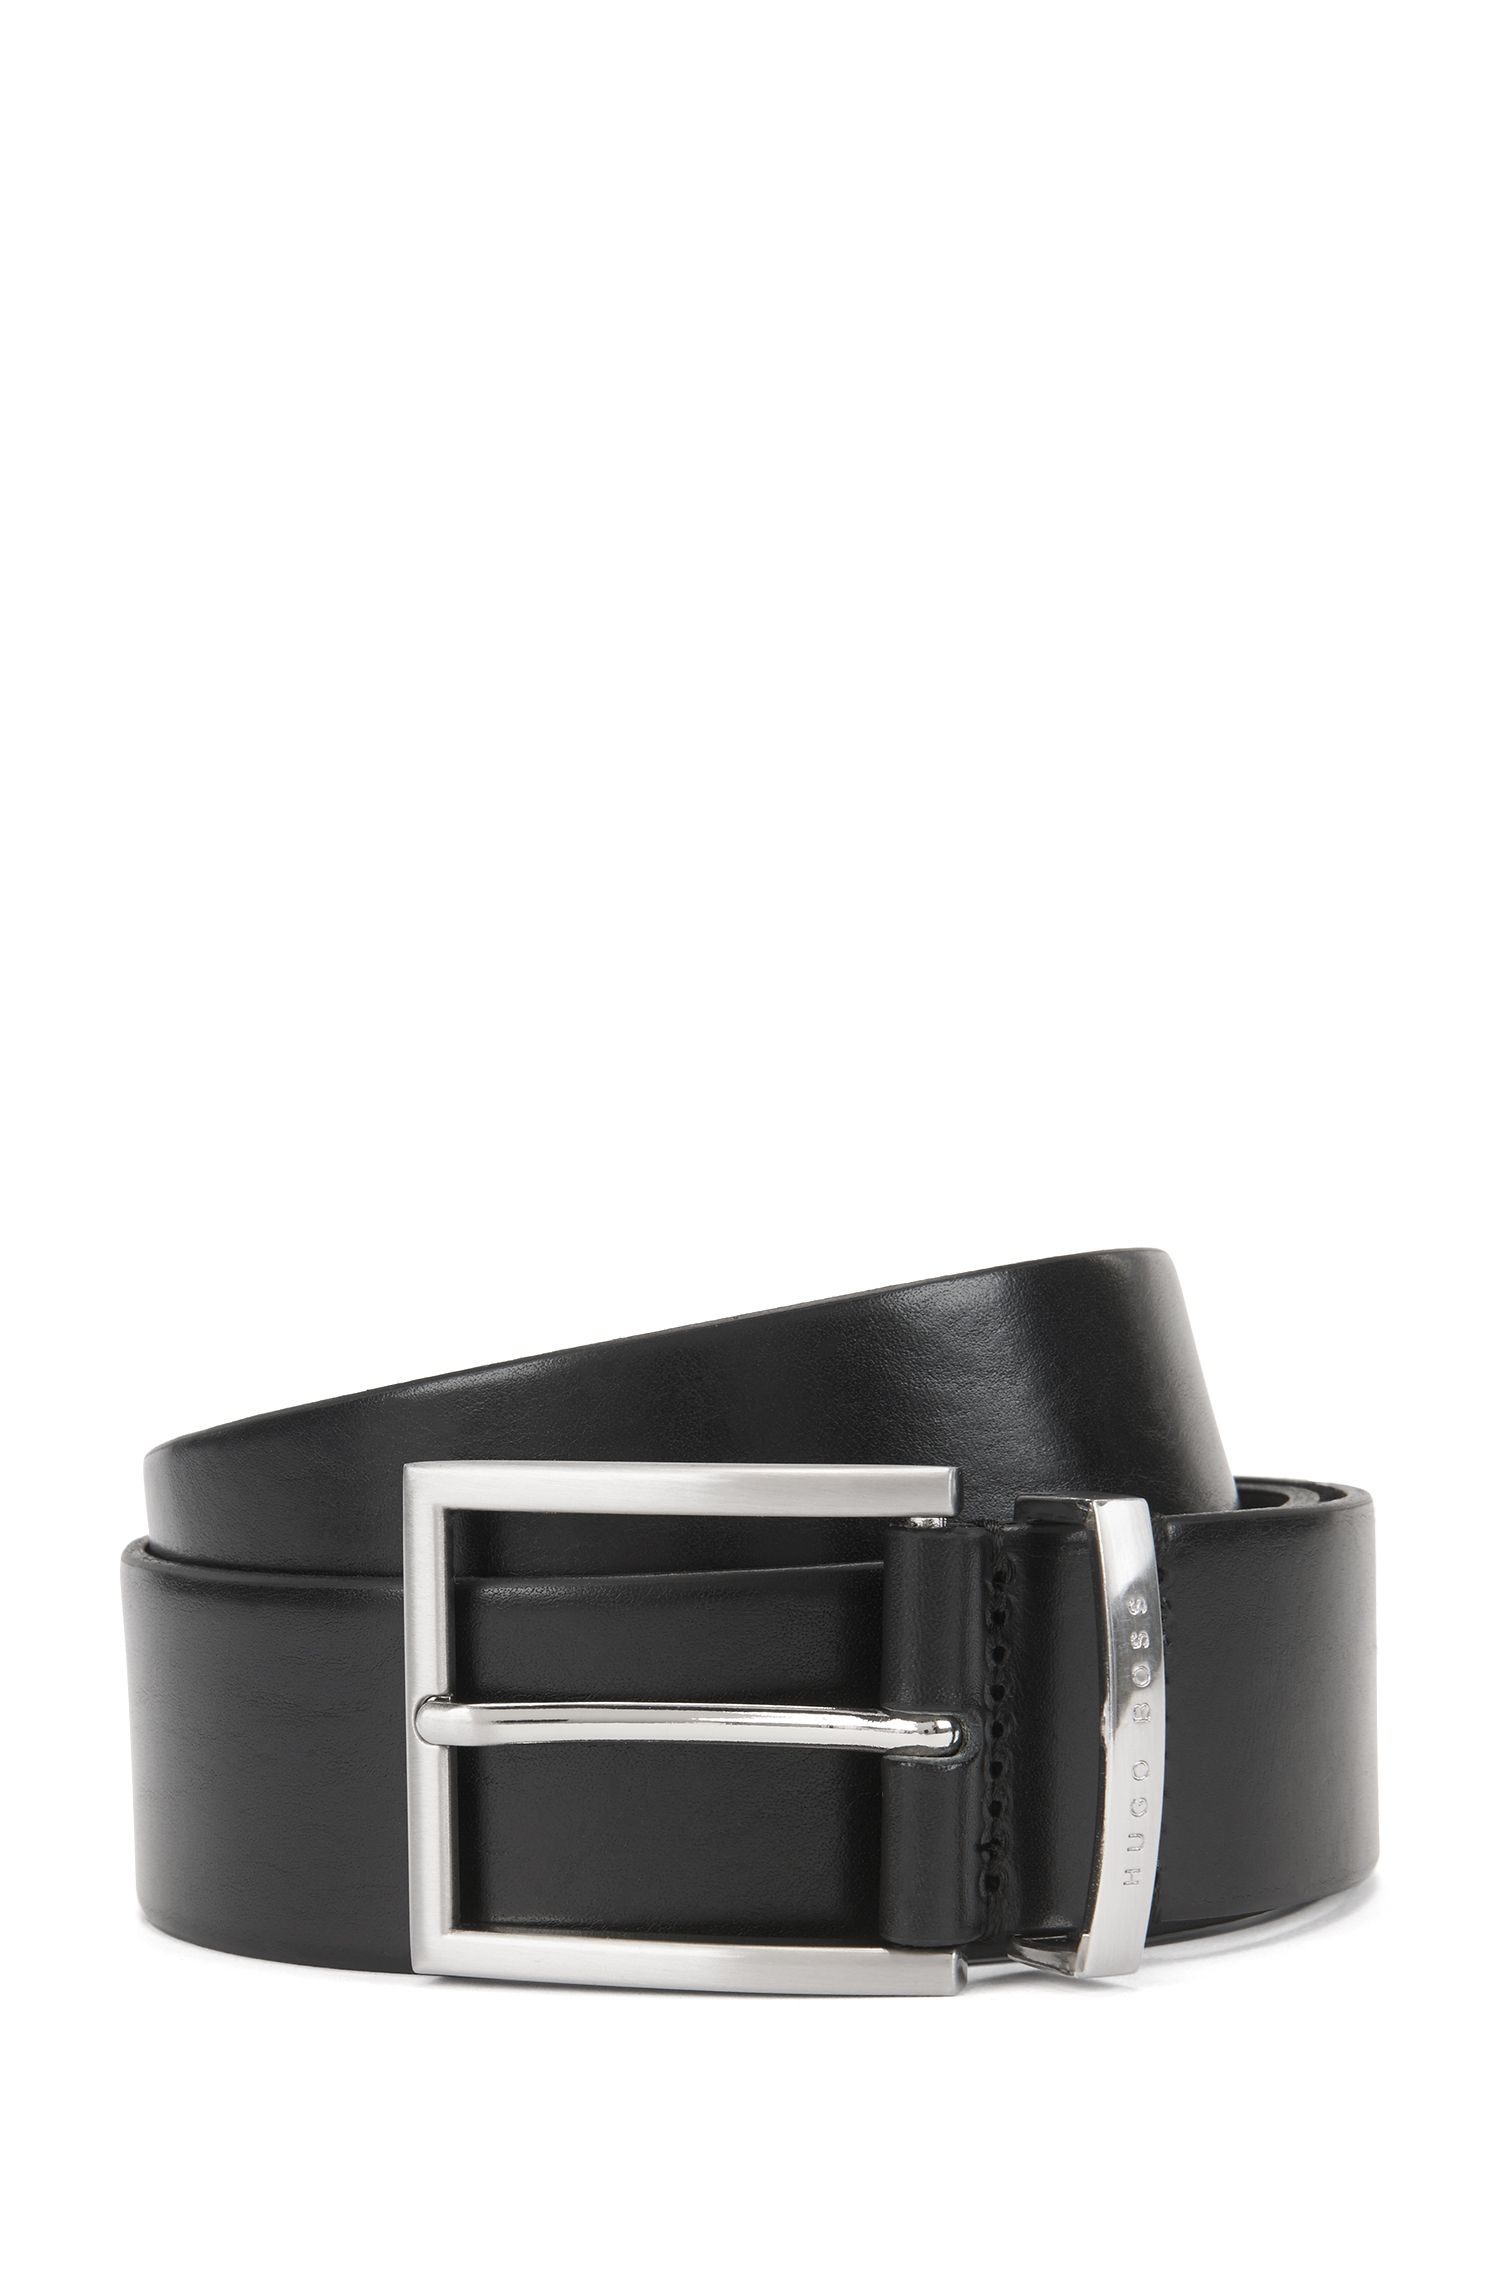 'Buddy' | Leather Belt